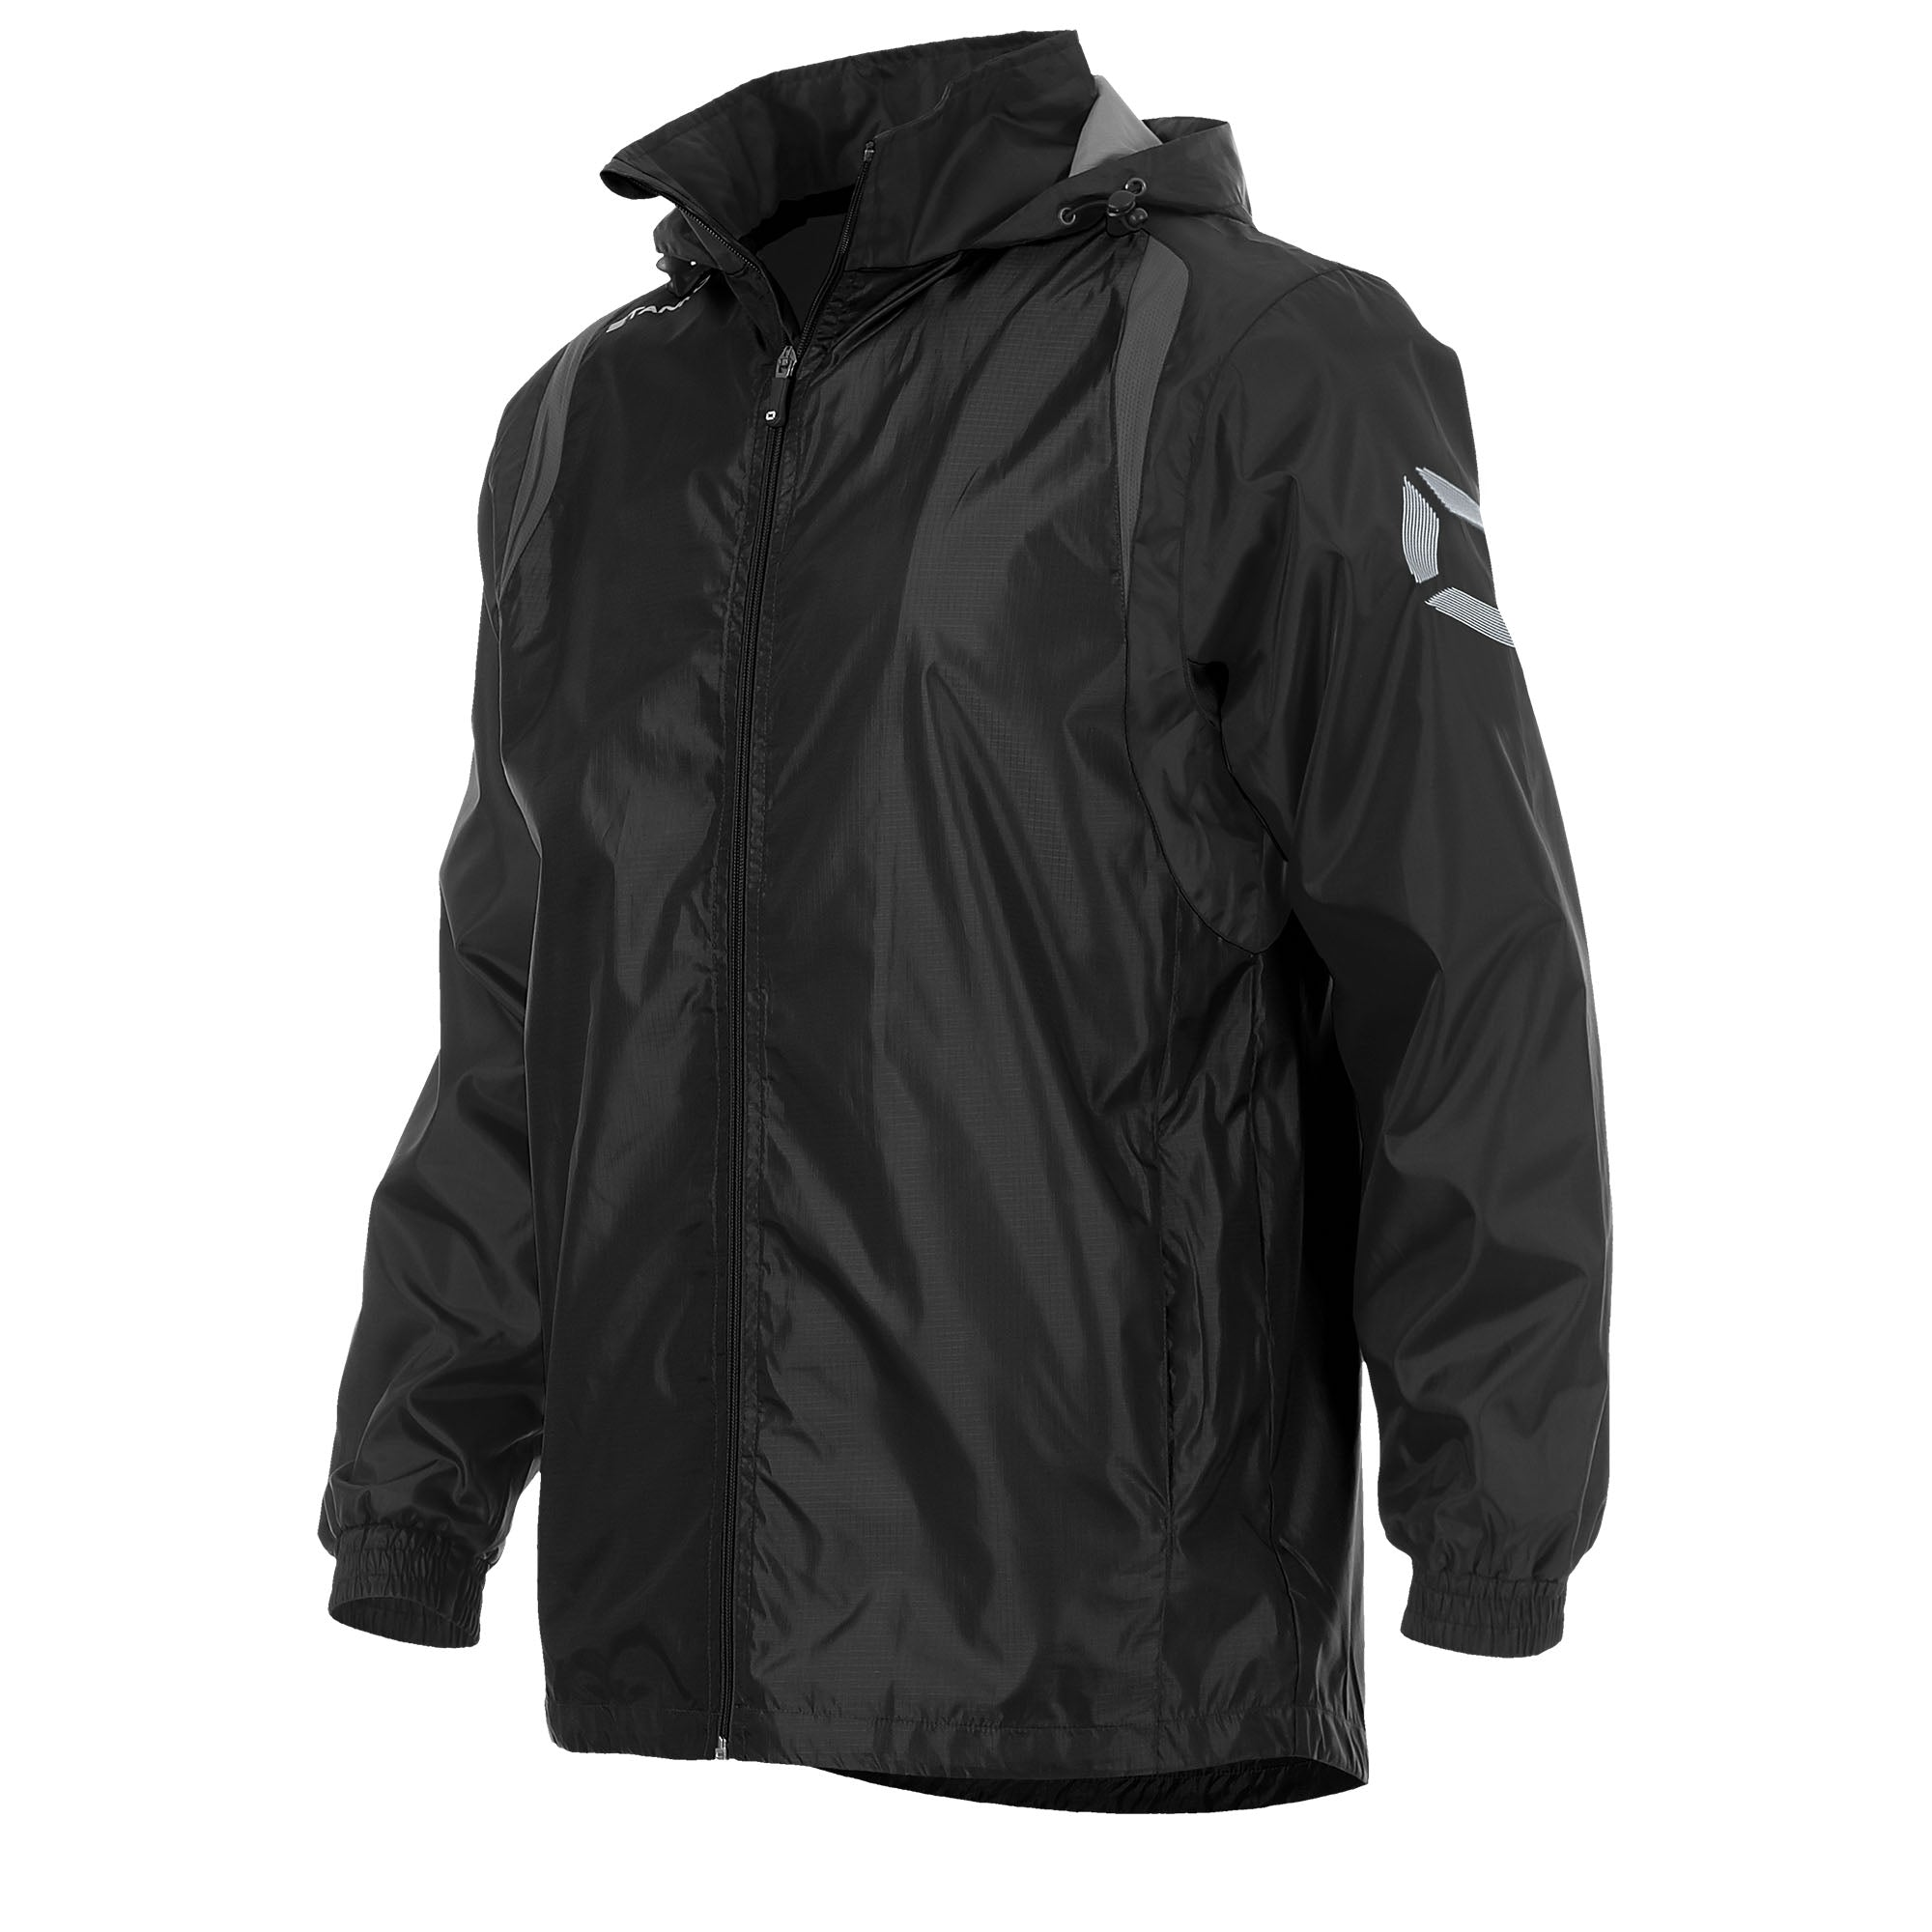 Stanno Centro Windbreaker - Black/Anthracite